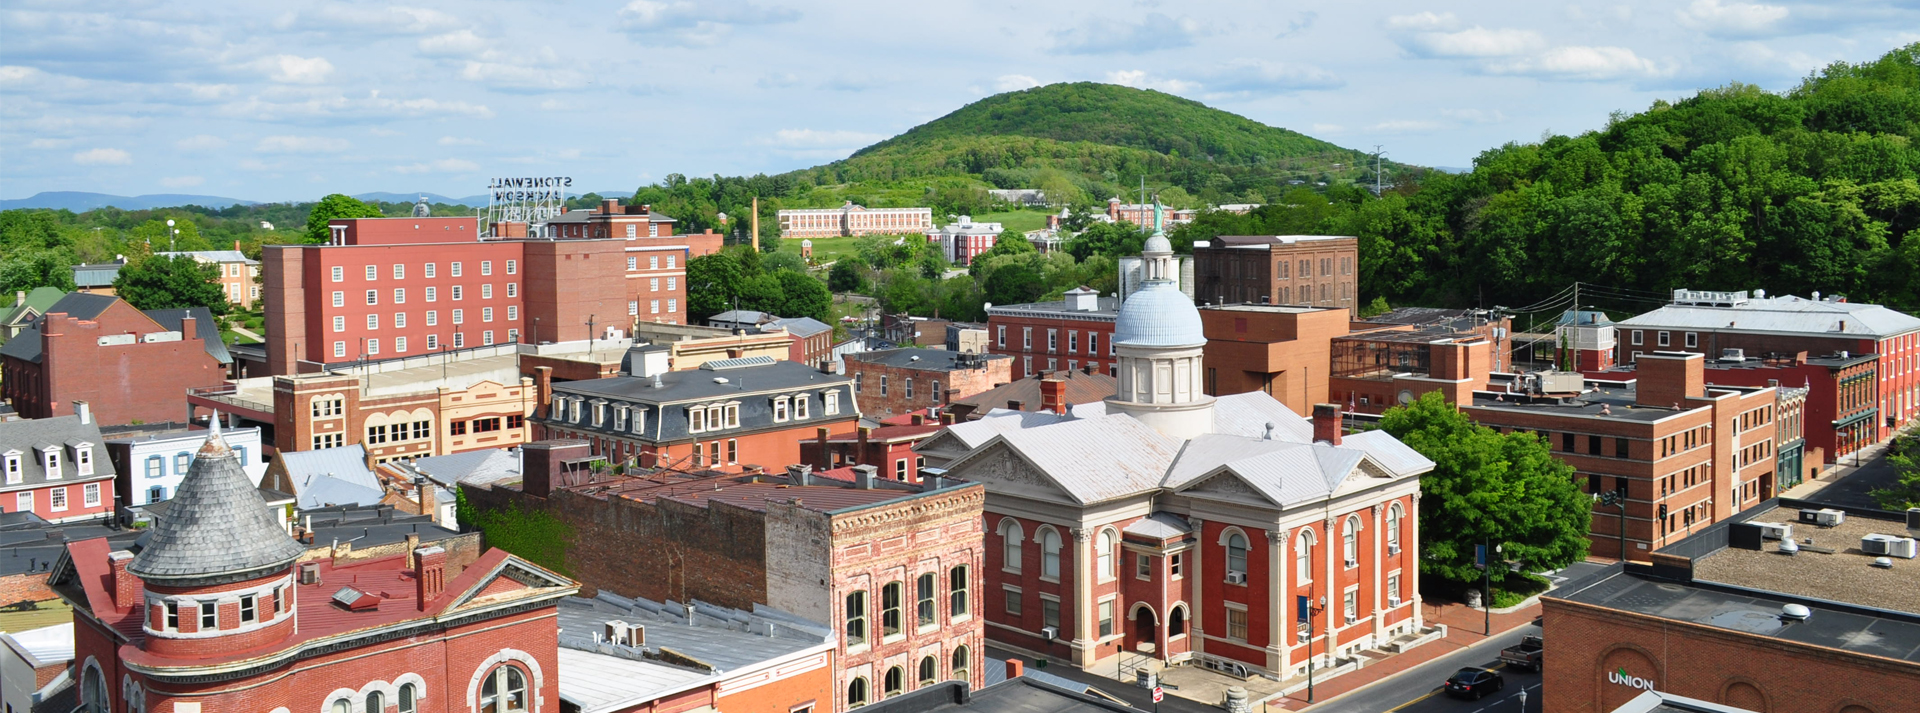 downtown staunton rooftops